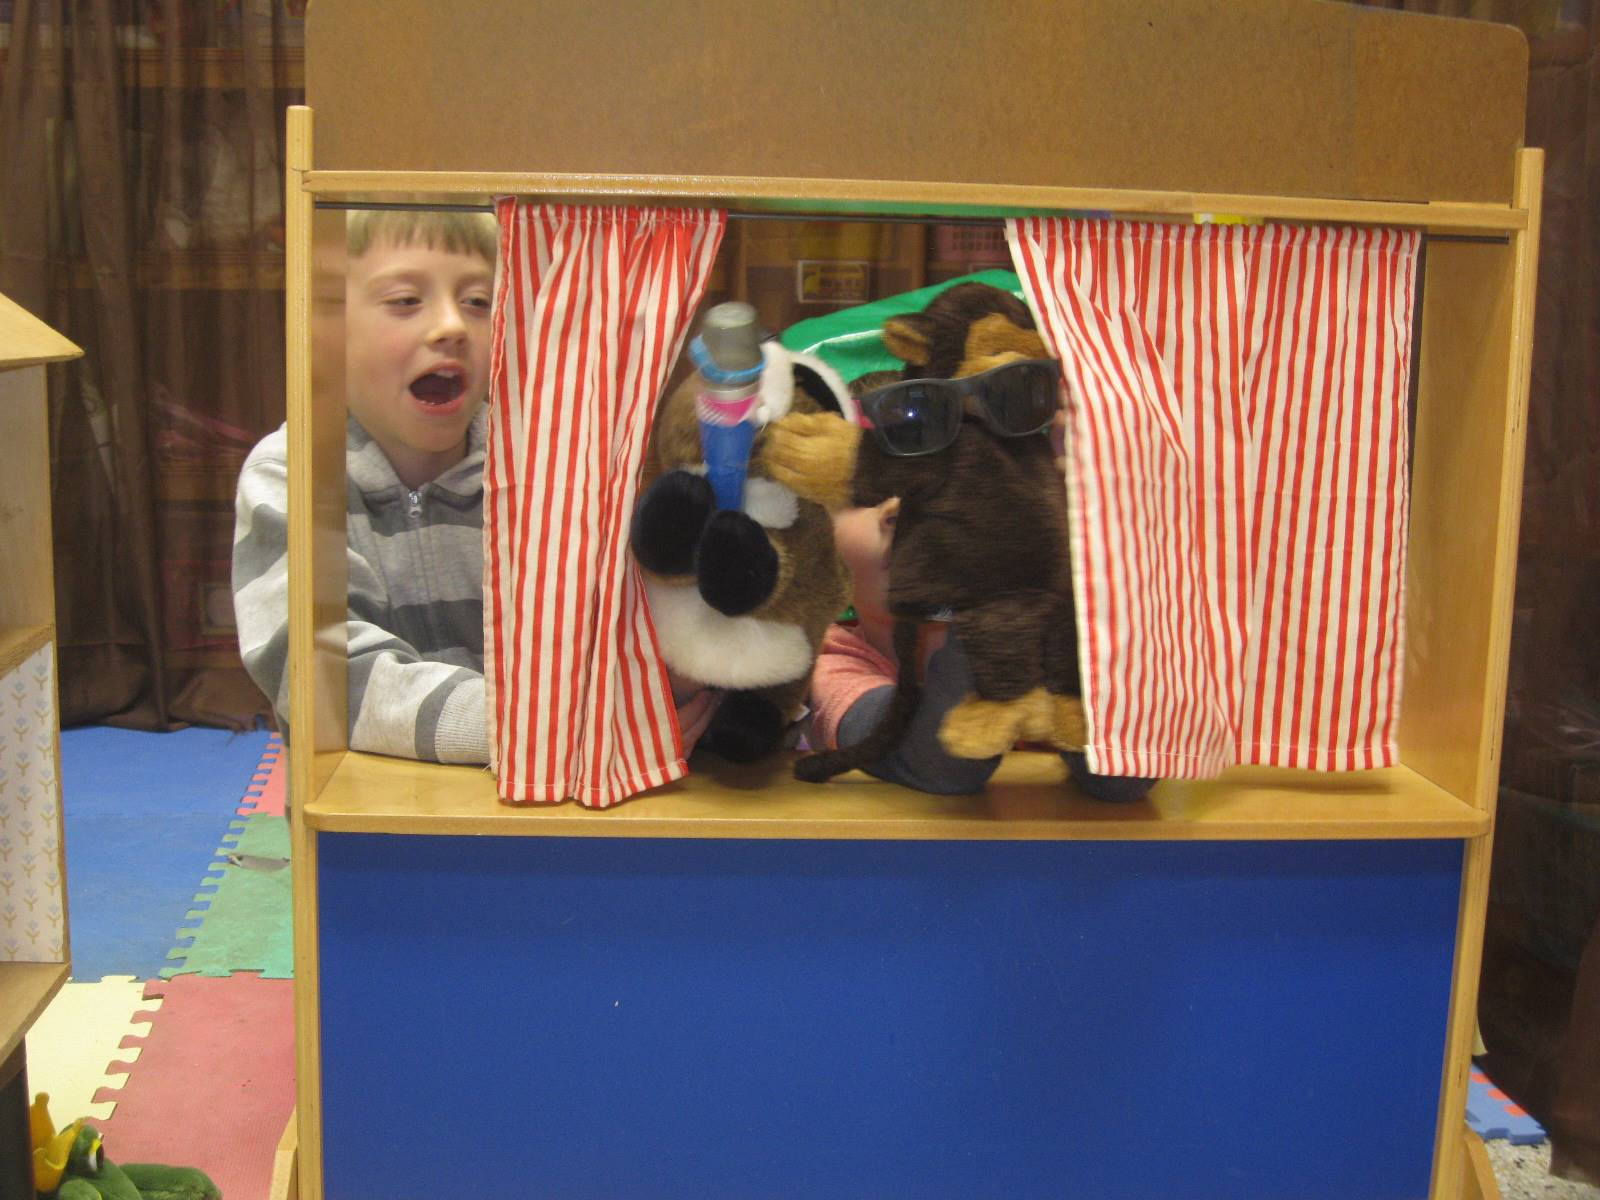 Cooperation! Puppets doing a singing show in the puppet theater!